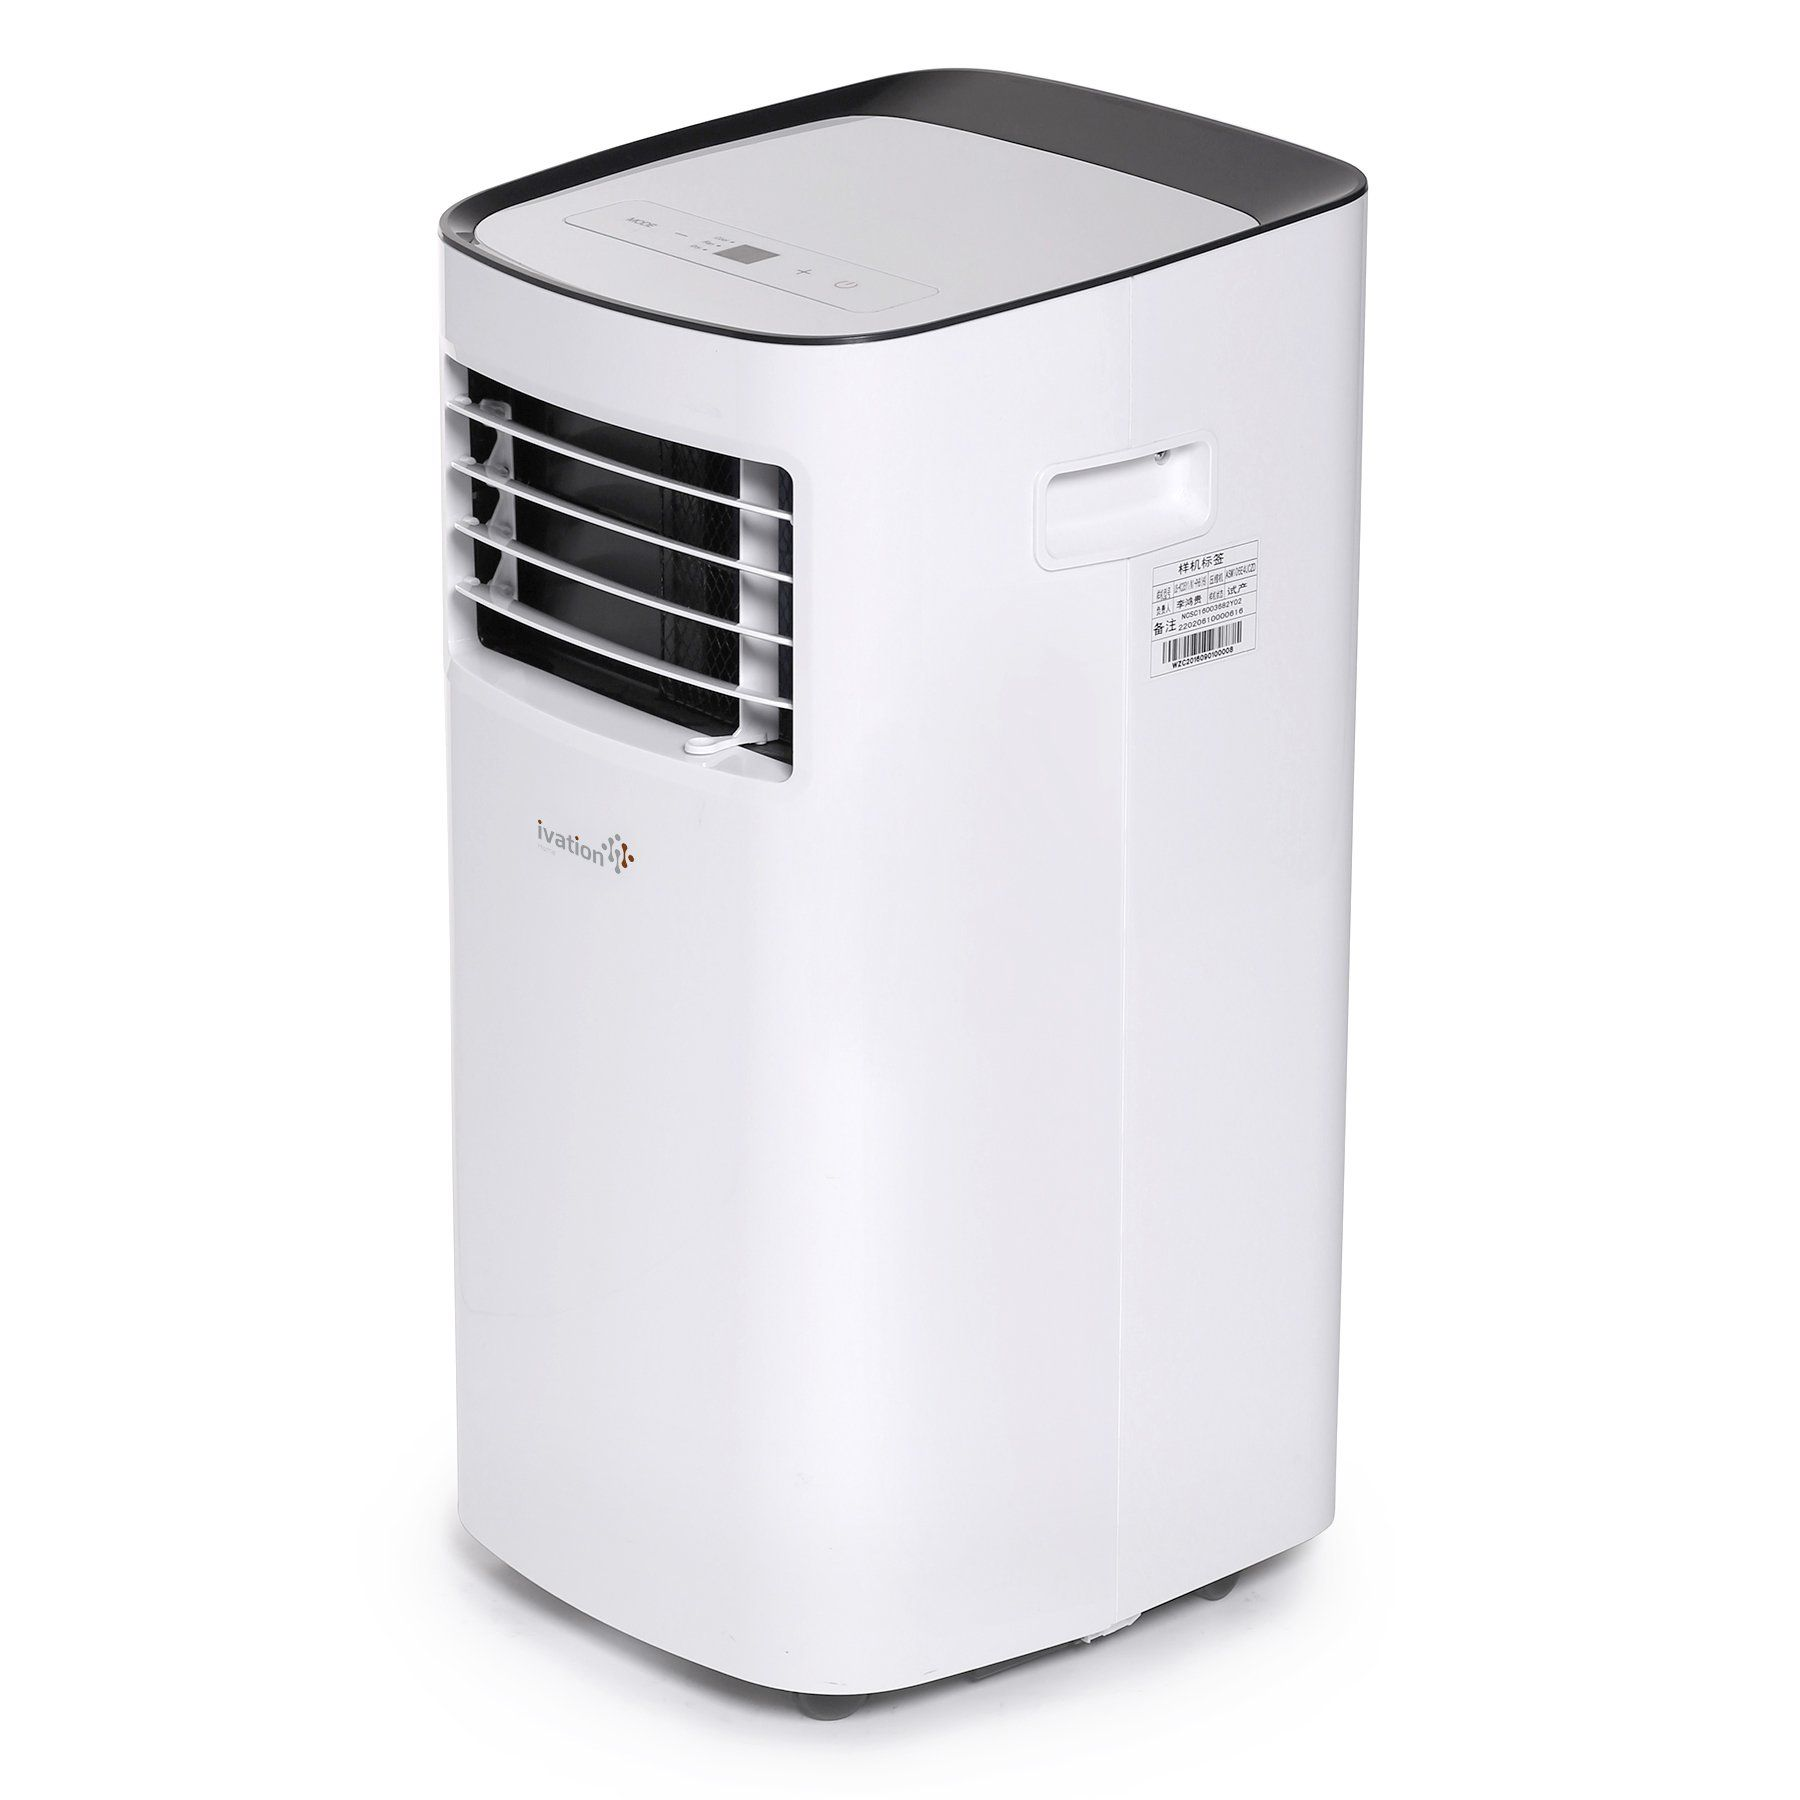 Ivation 10000 Btu Portable Air Conditioner A Compact Singlehose